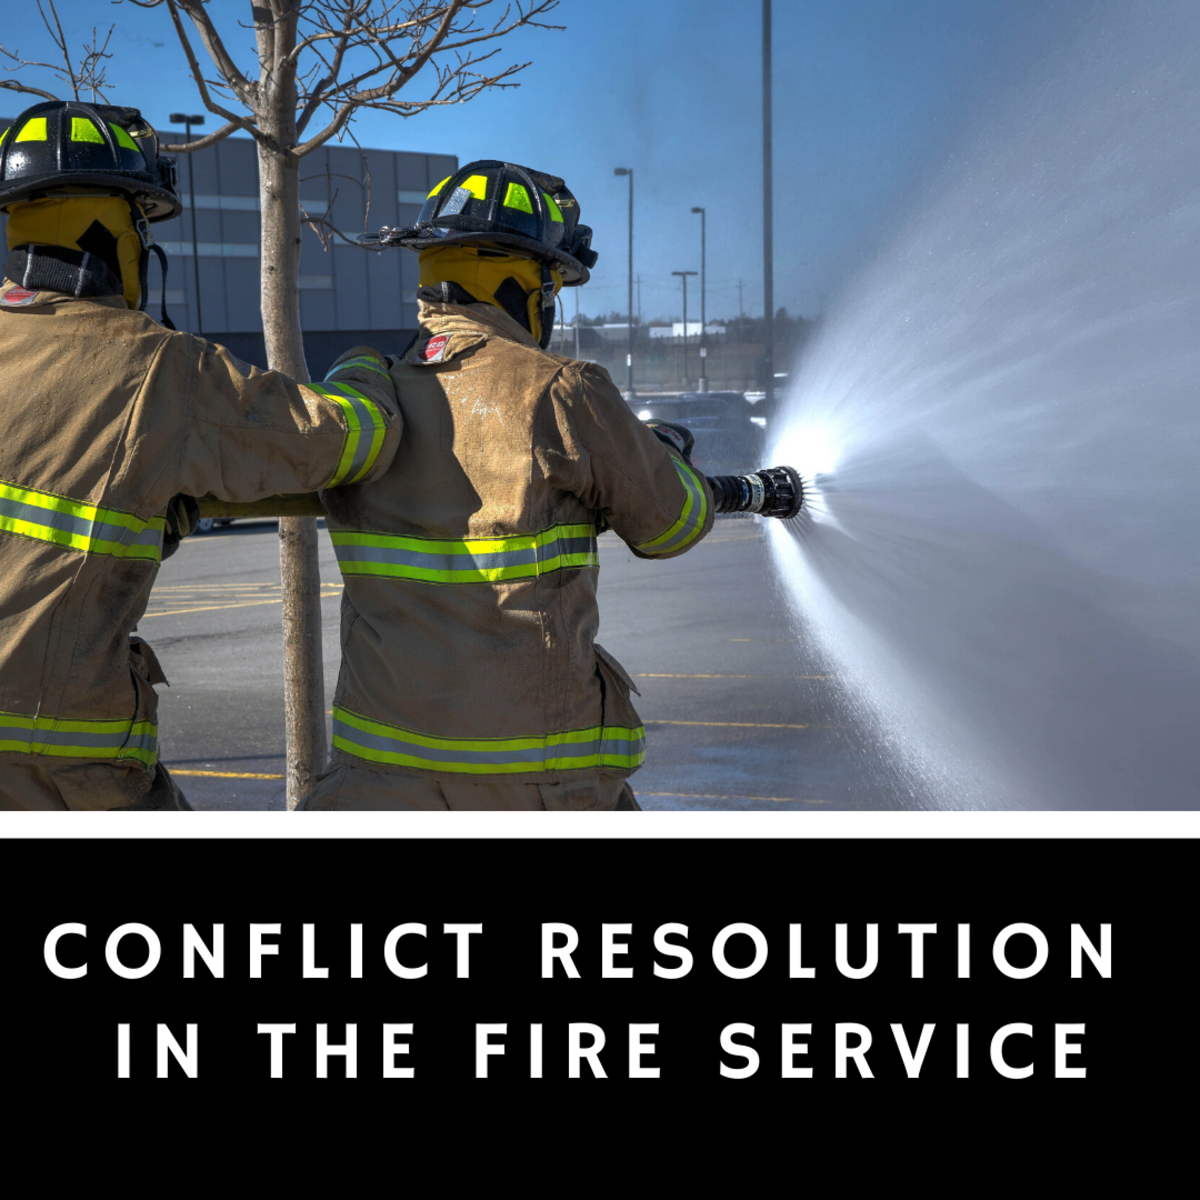 Let's Talk Fire: Conflict Resolution in the Fire Service